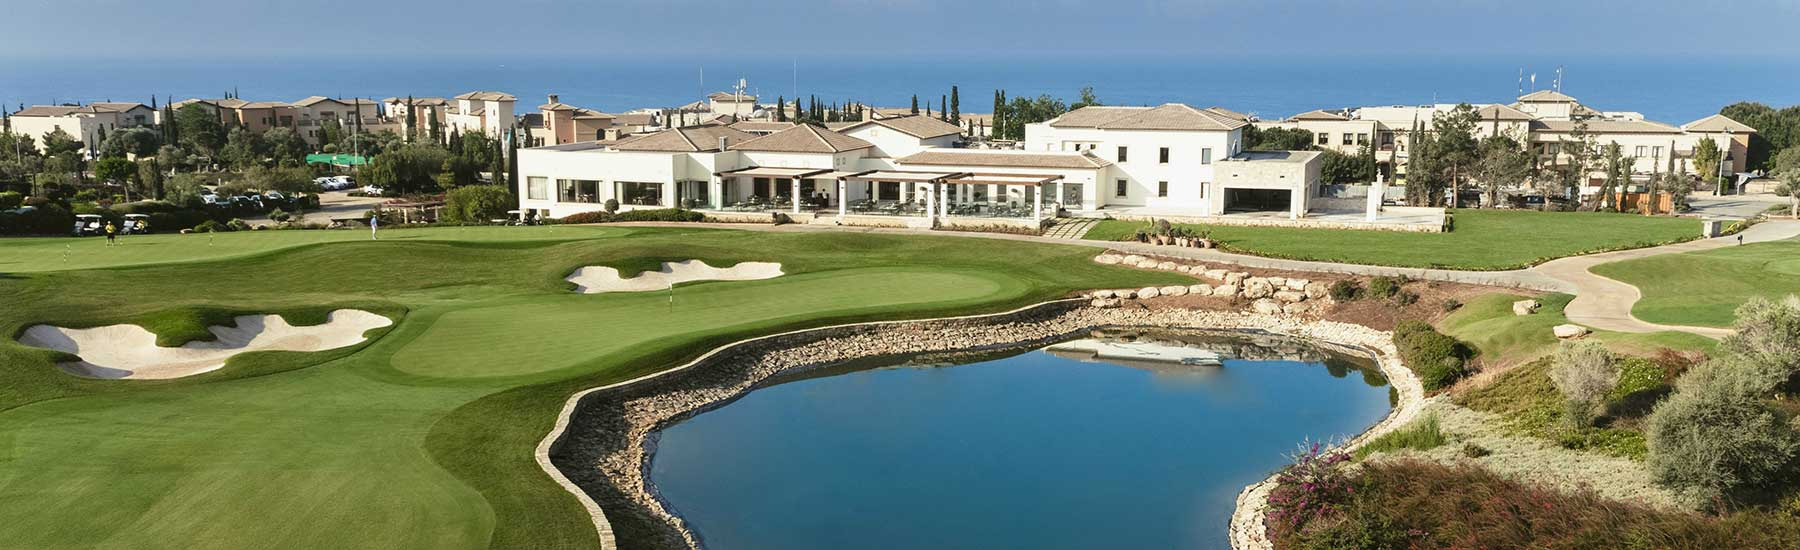 All you need to know about Aphrodite Hills